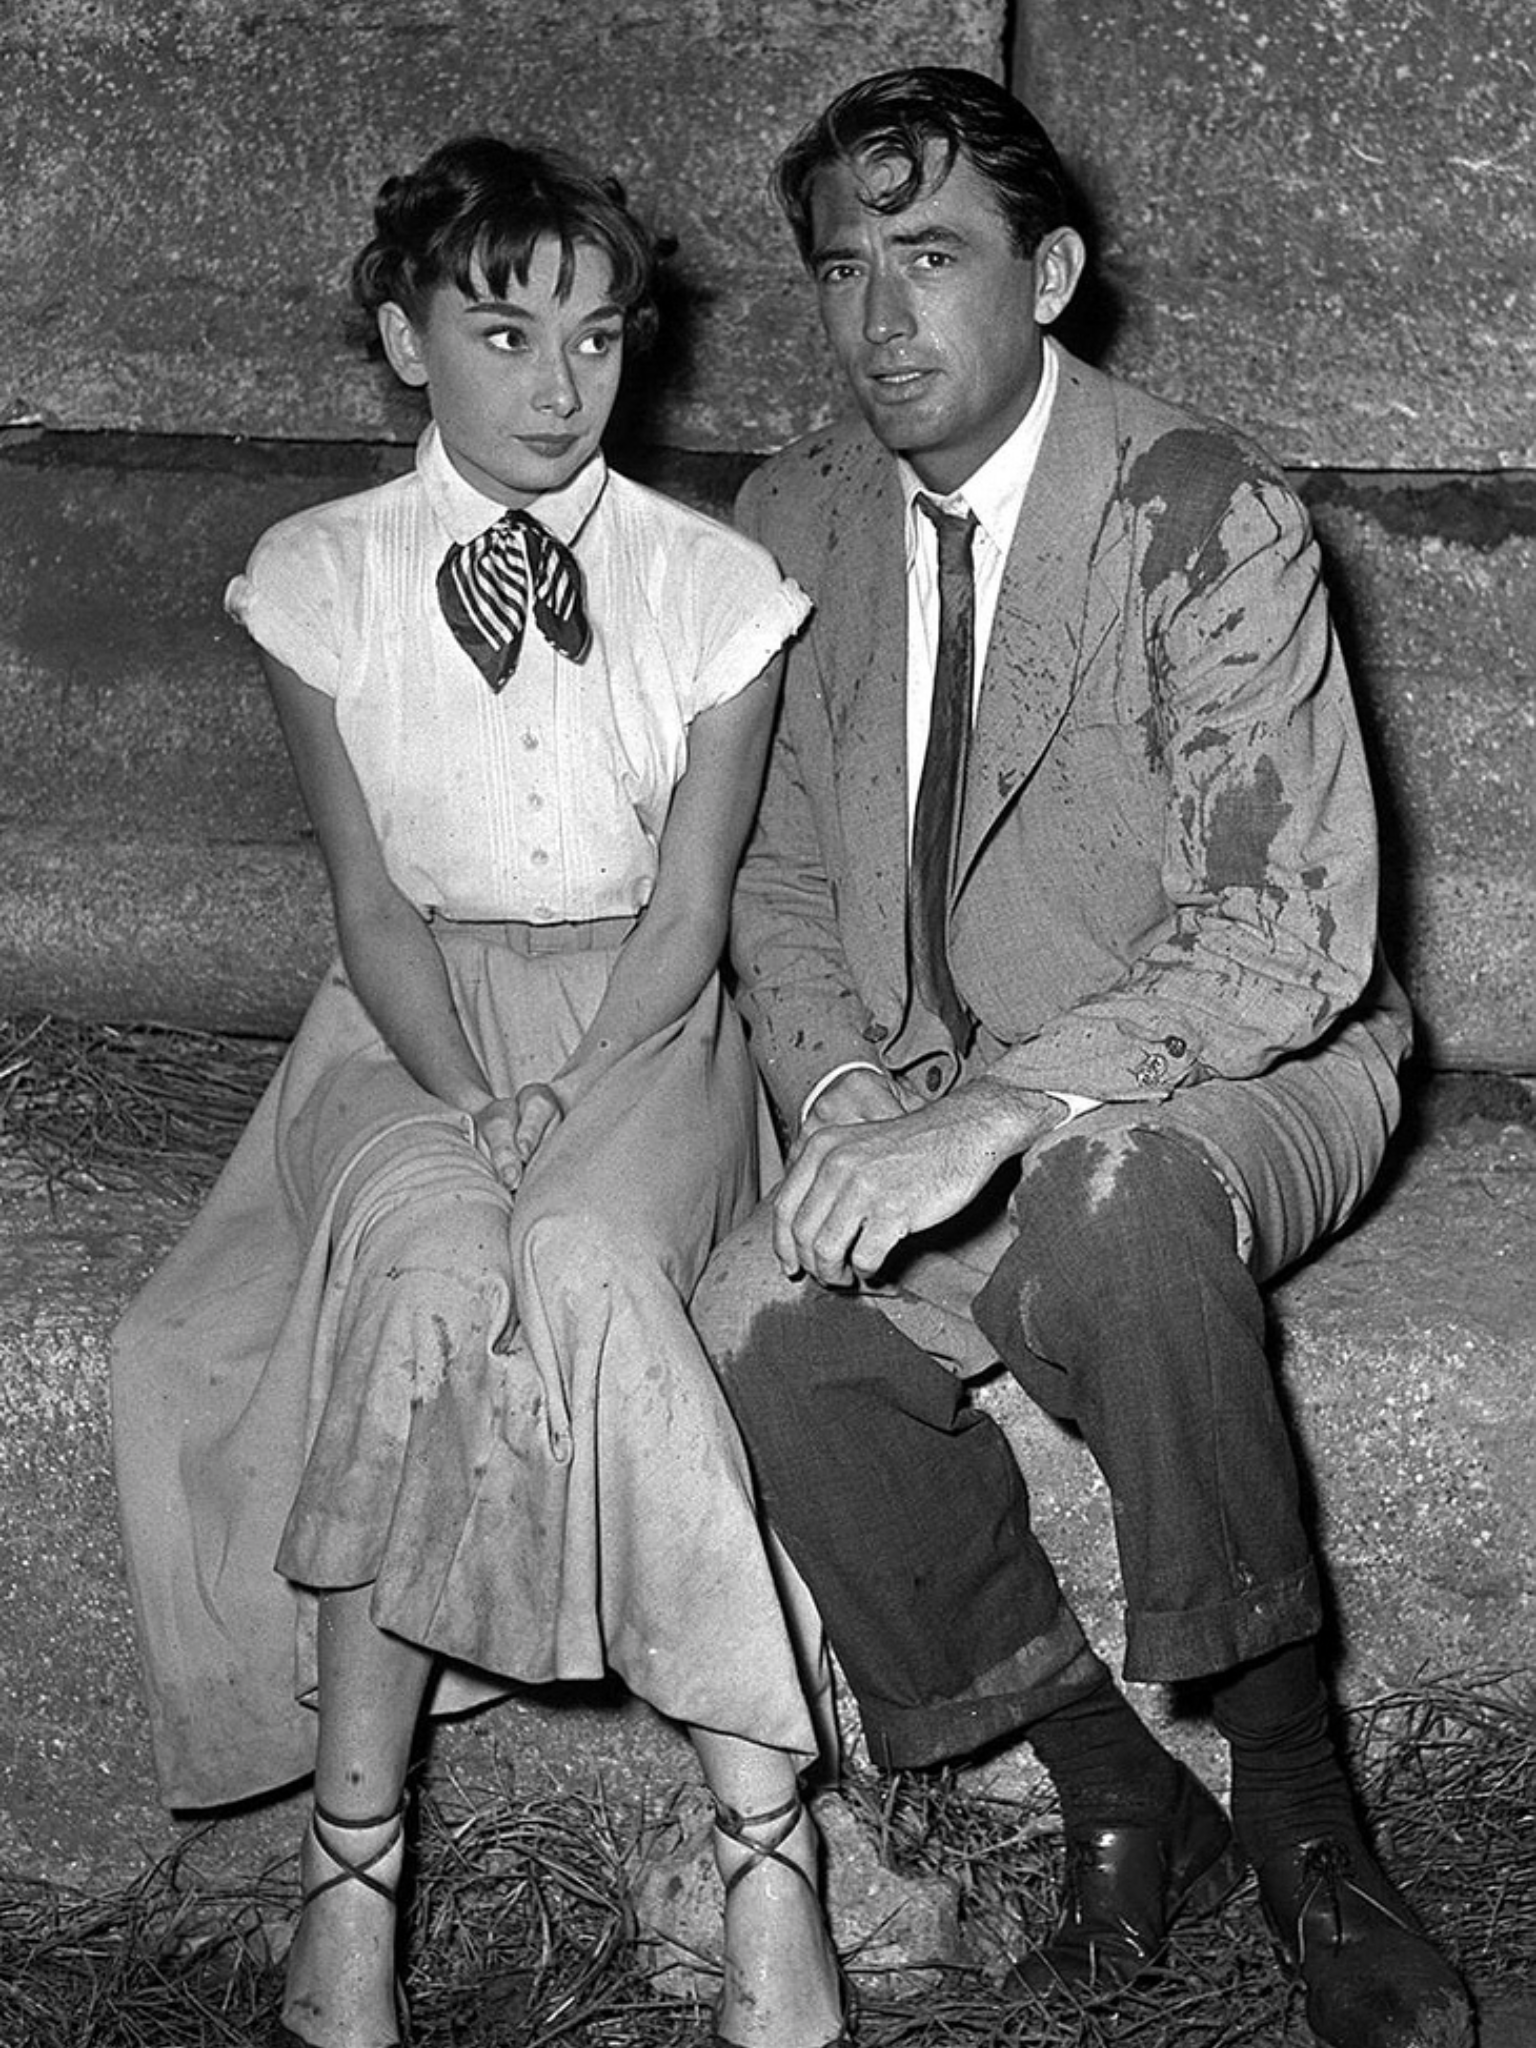 Audrey Hepburn And Gregory Peck On The Set Of Roman Holiday 1953 Audrey Hepburn Photos Audrey Hepburn Roman Holiday